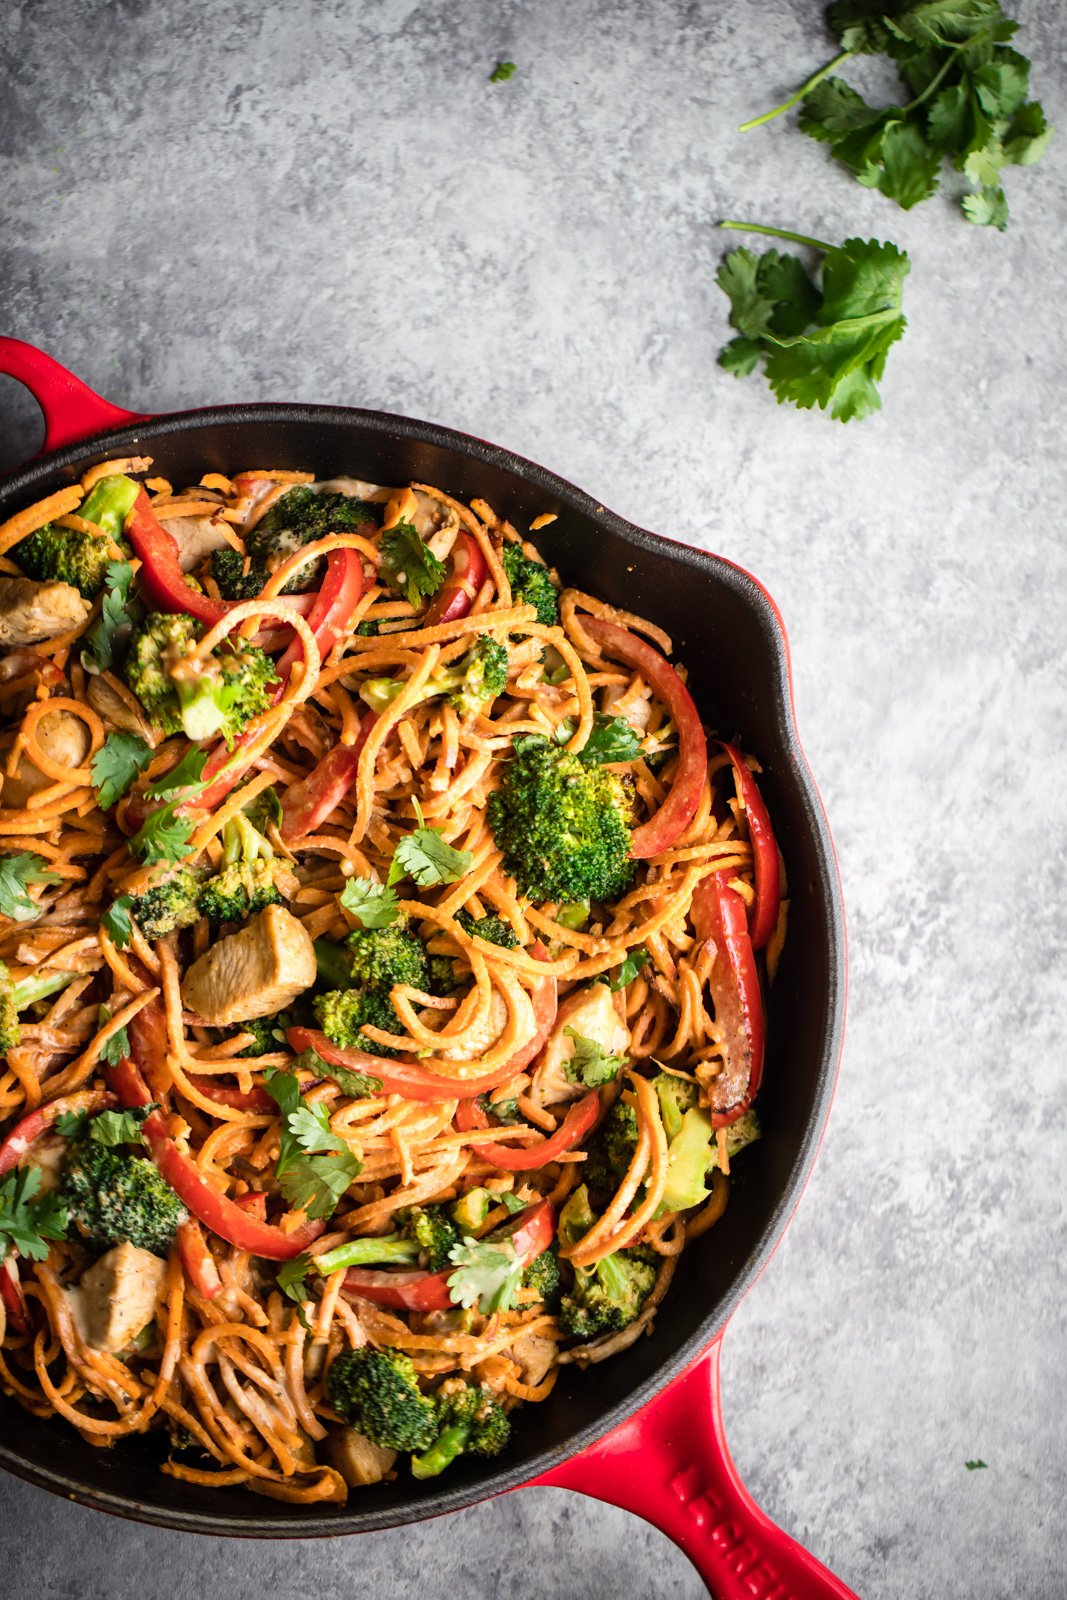 Thai peanut chicken sweet potato noodle stir fry packs in lots of nourishing veggies and only takes 30 minutes to make. Easy, healthy and delicious! Great for those doing low carb or grain free/gluten free.